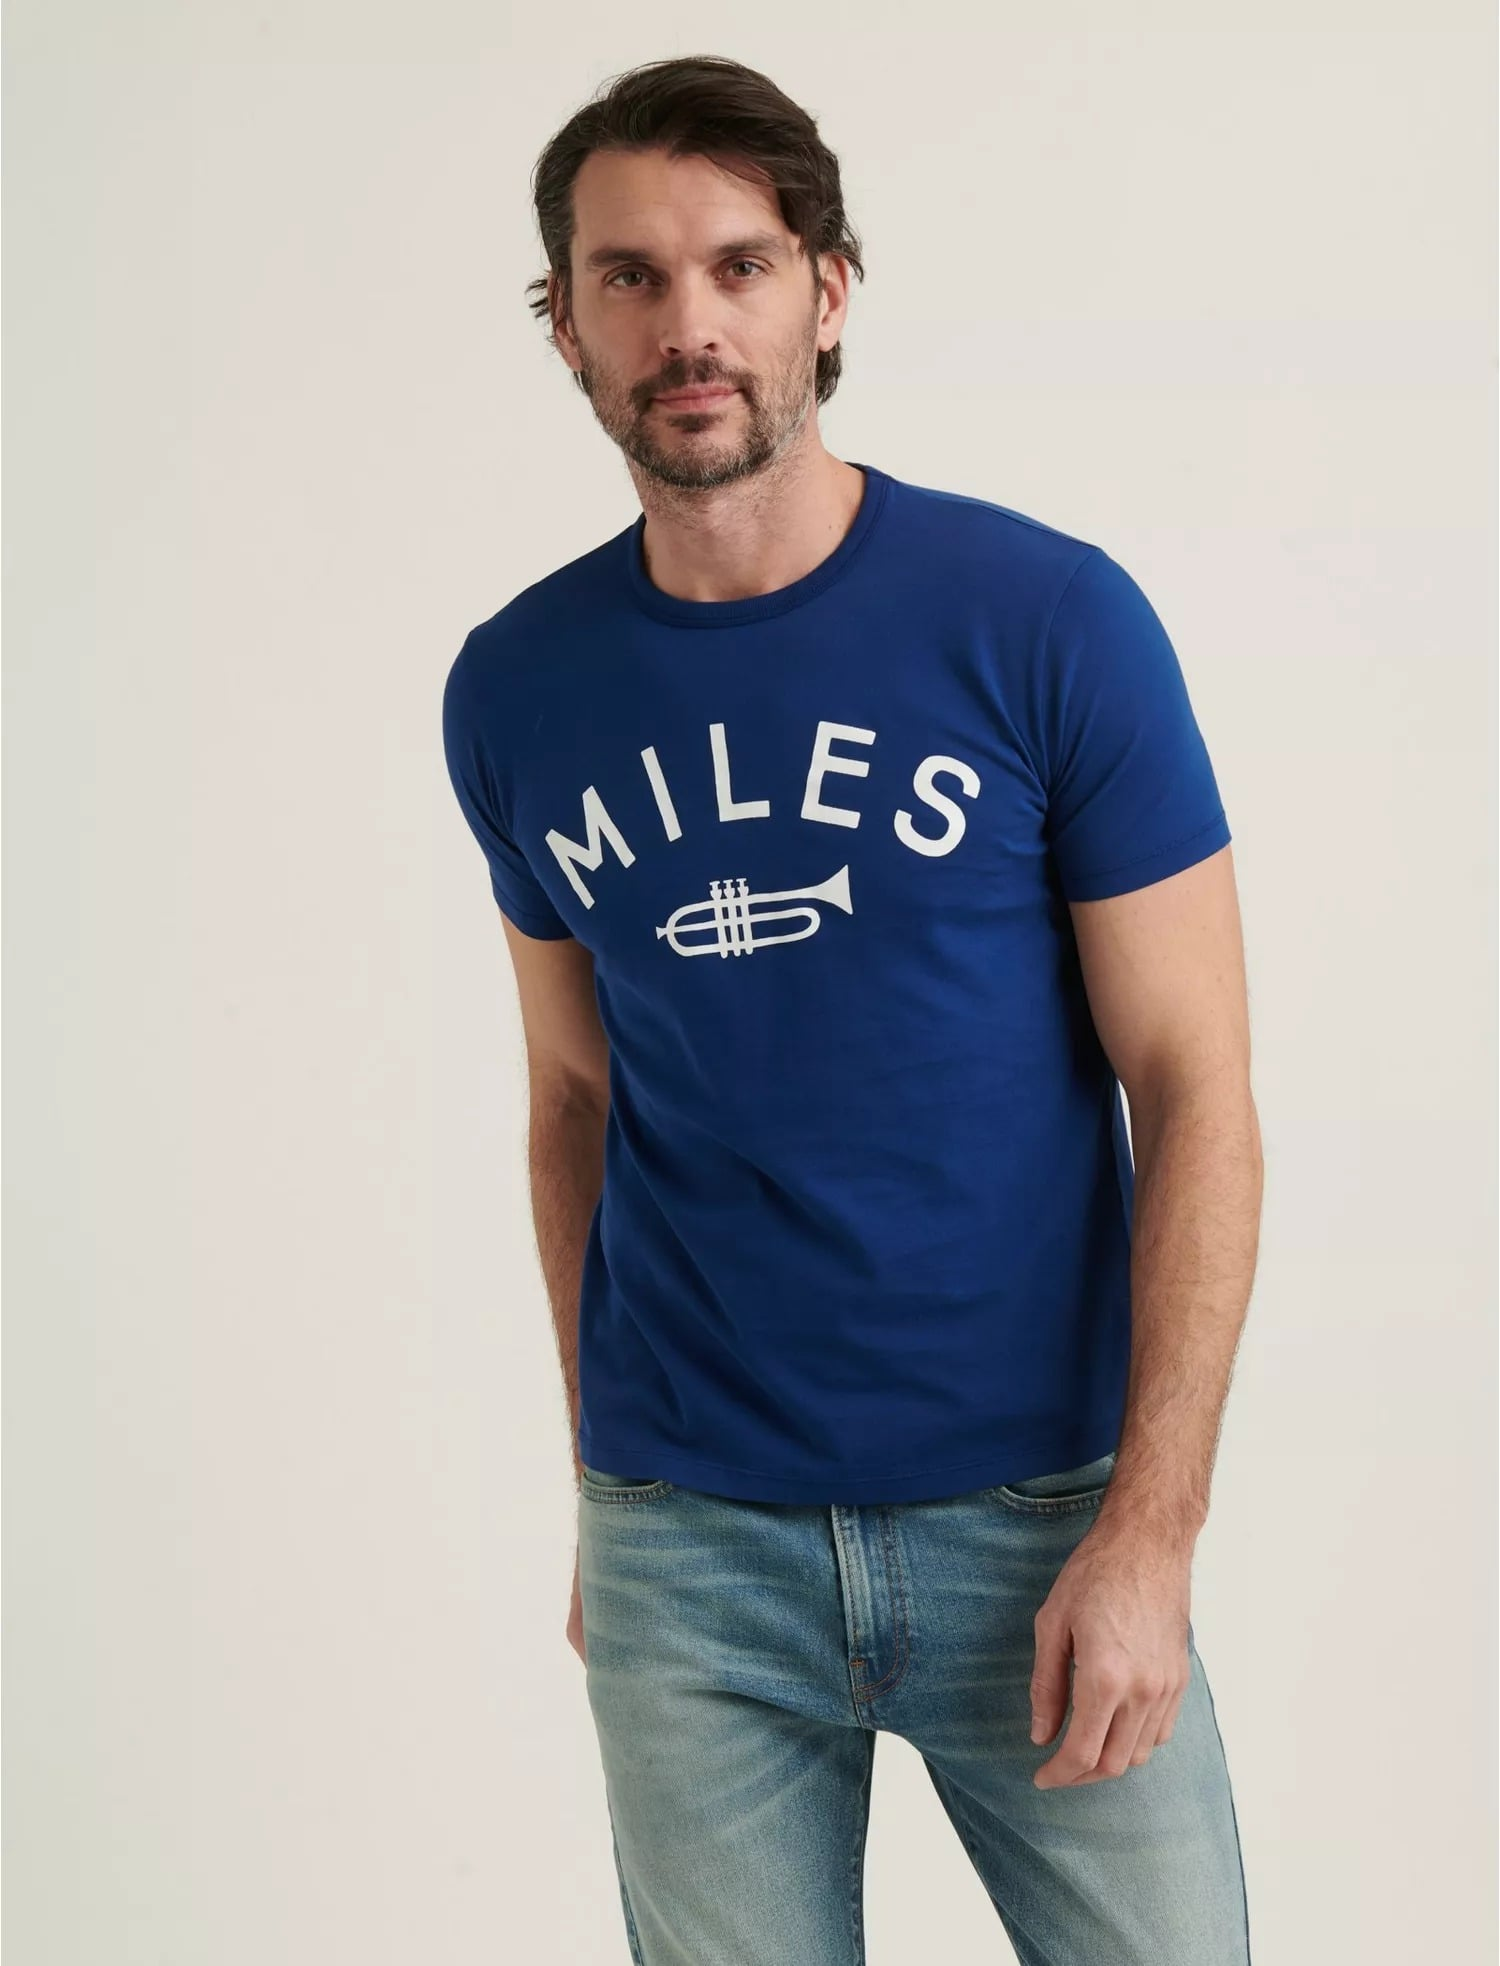 Lucky Brand Extra 50% Off Men's & Women's Apparel: Jeans from $15, Shirts $10,Tees